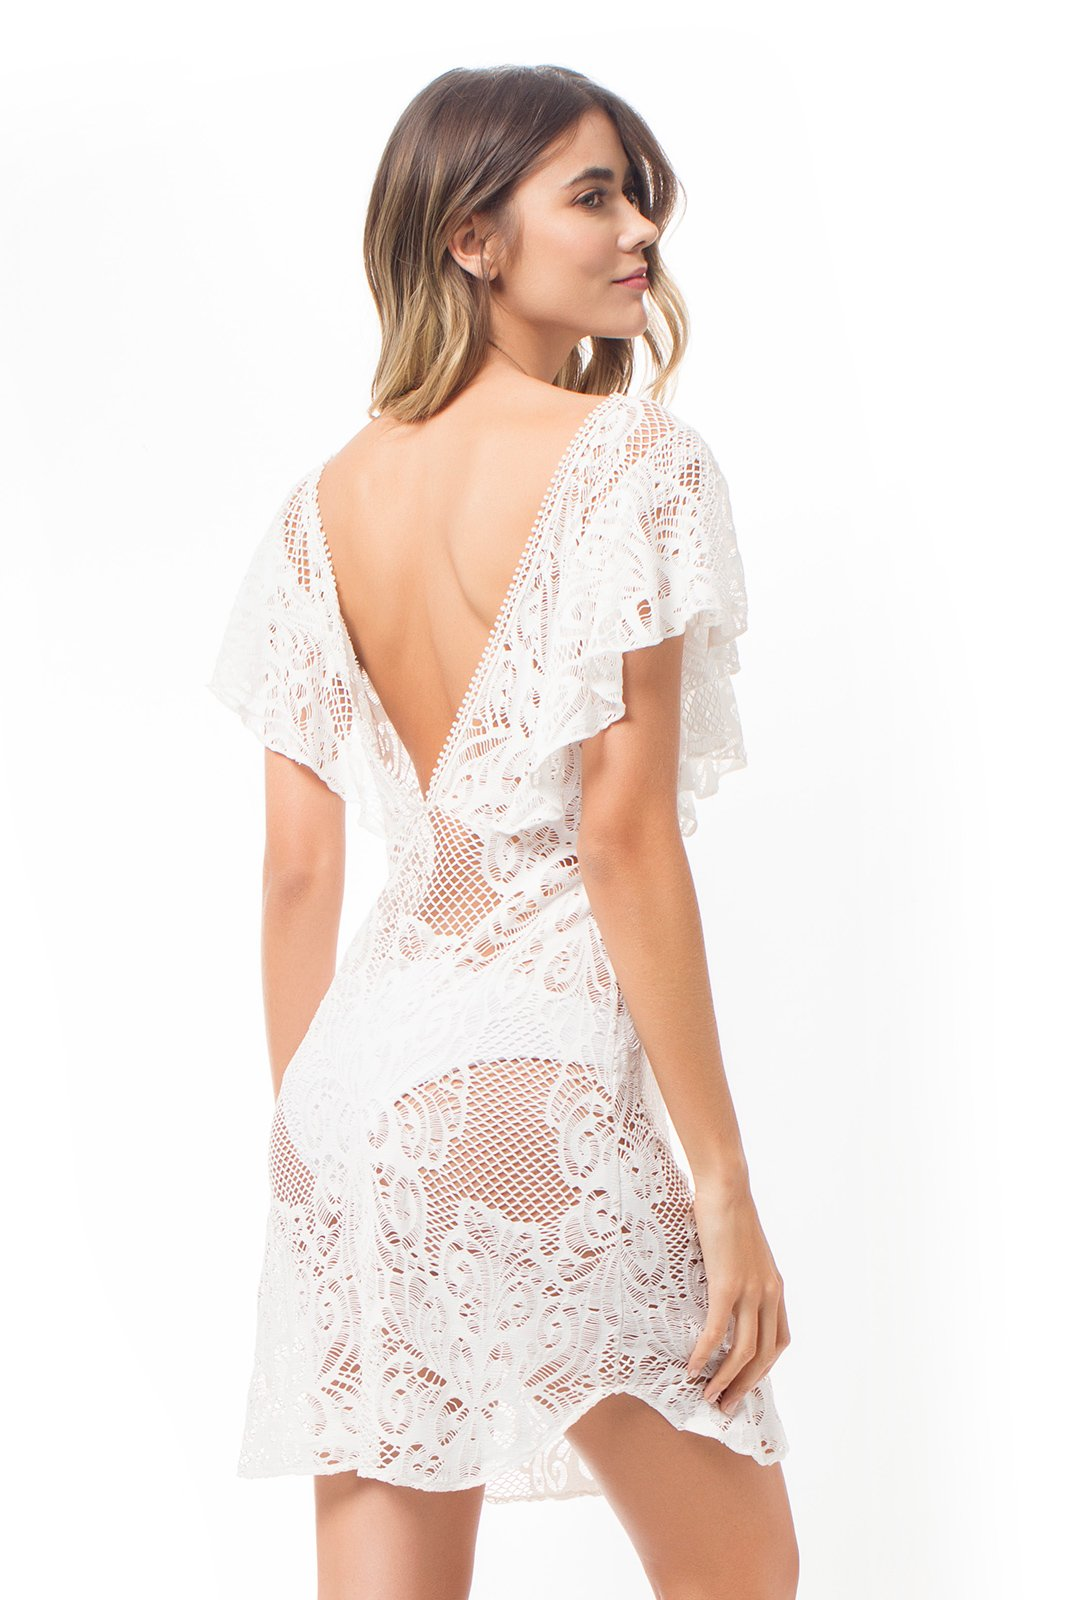 97cfeadbe65 ... Short white lace dress with flounce sleeves - MAPALE DRESS ...